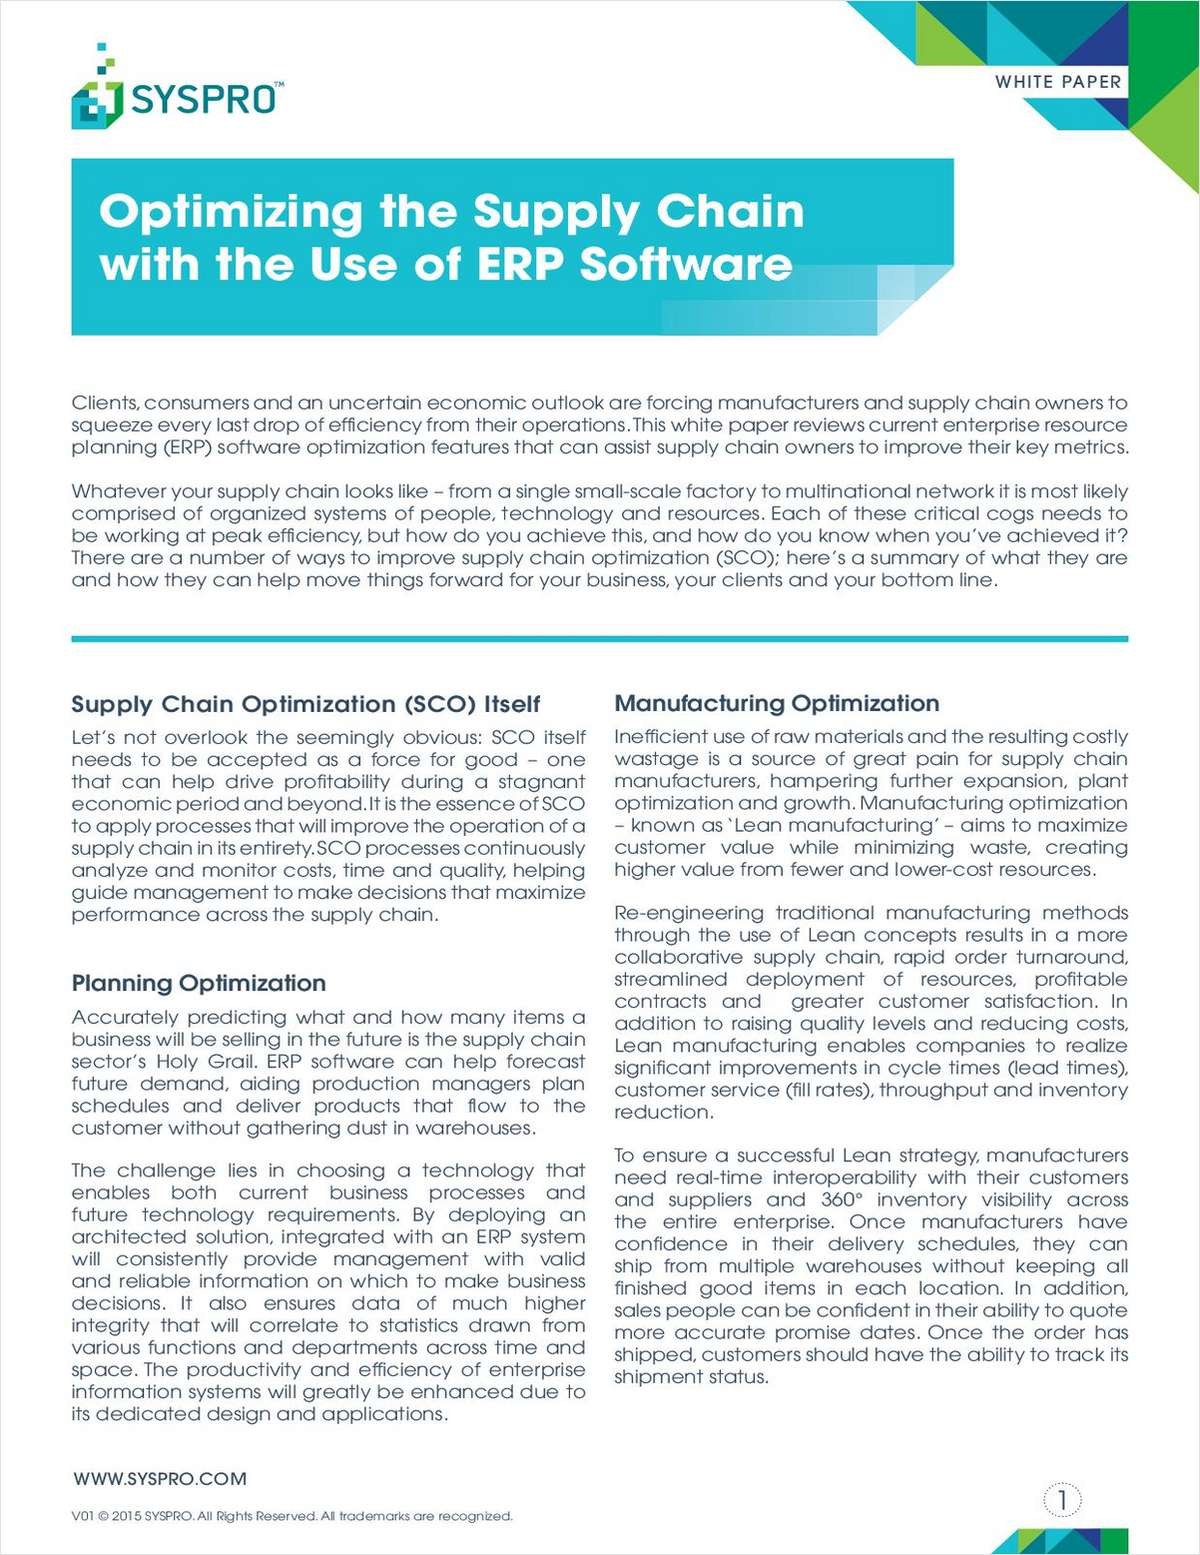 Optimizing the Supply Chain with the Use of ERP Software